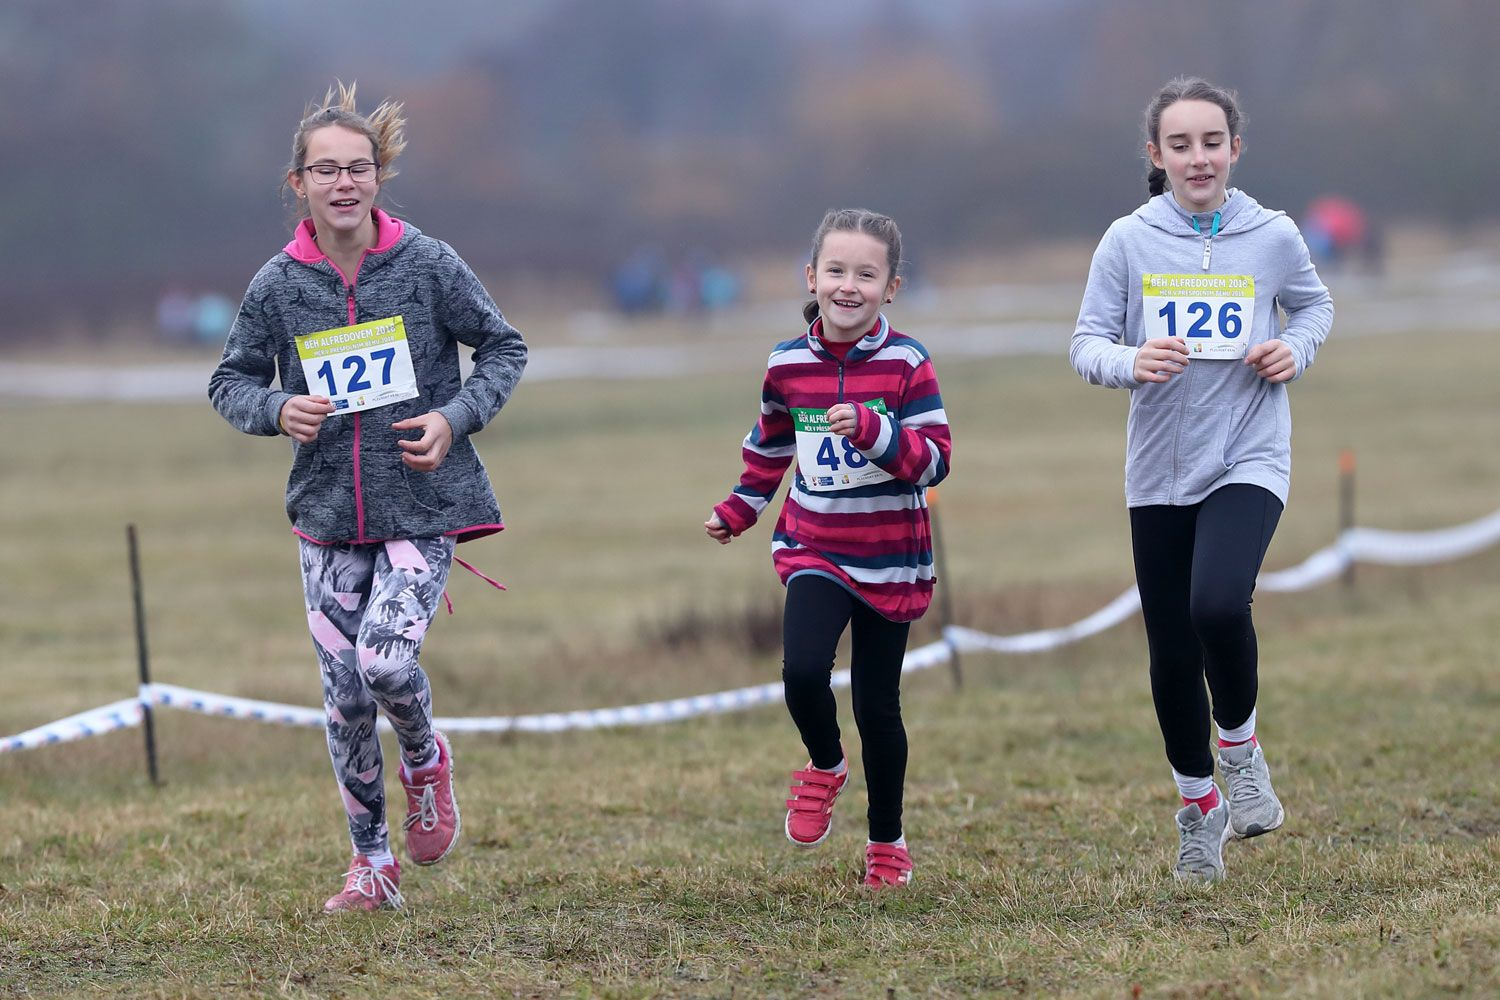 CZ Championship Cross Country Alfredov 01